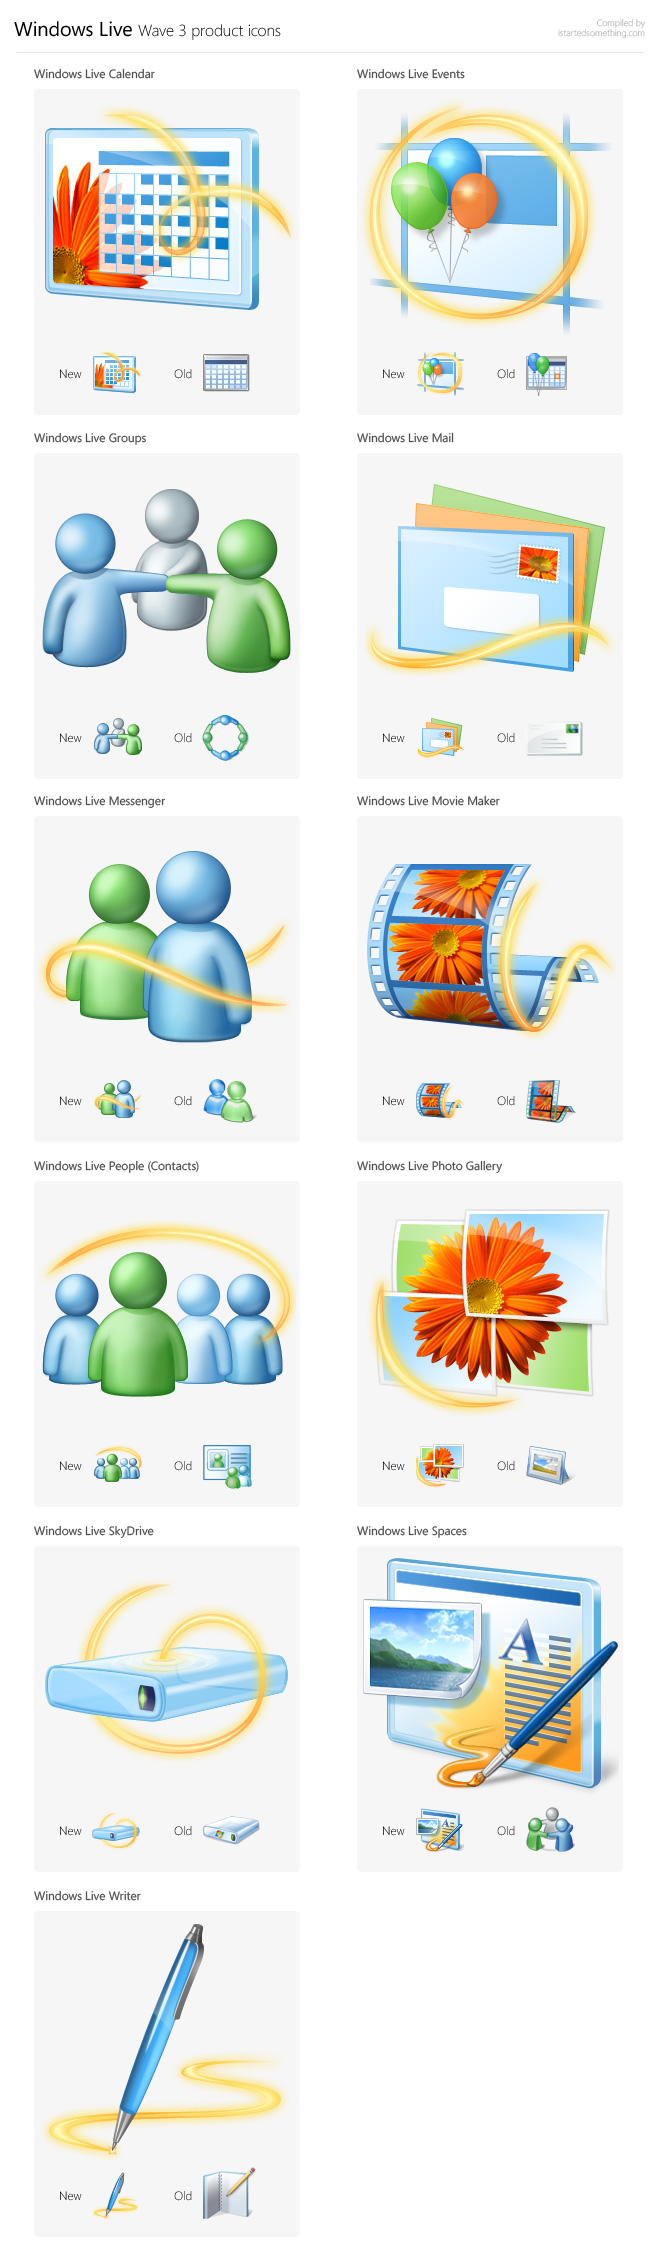 Windows Live Wave 3 icons